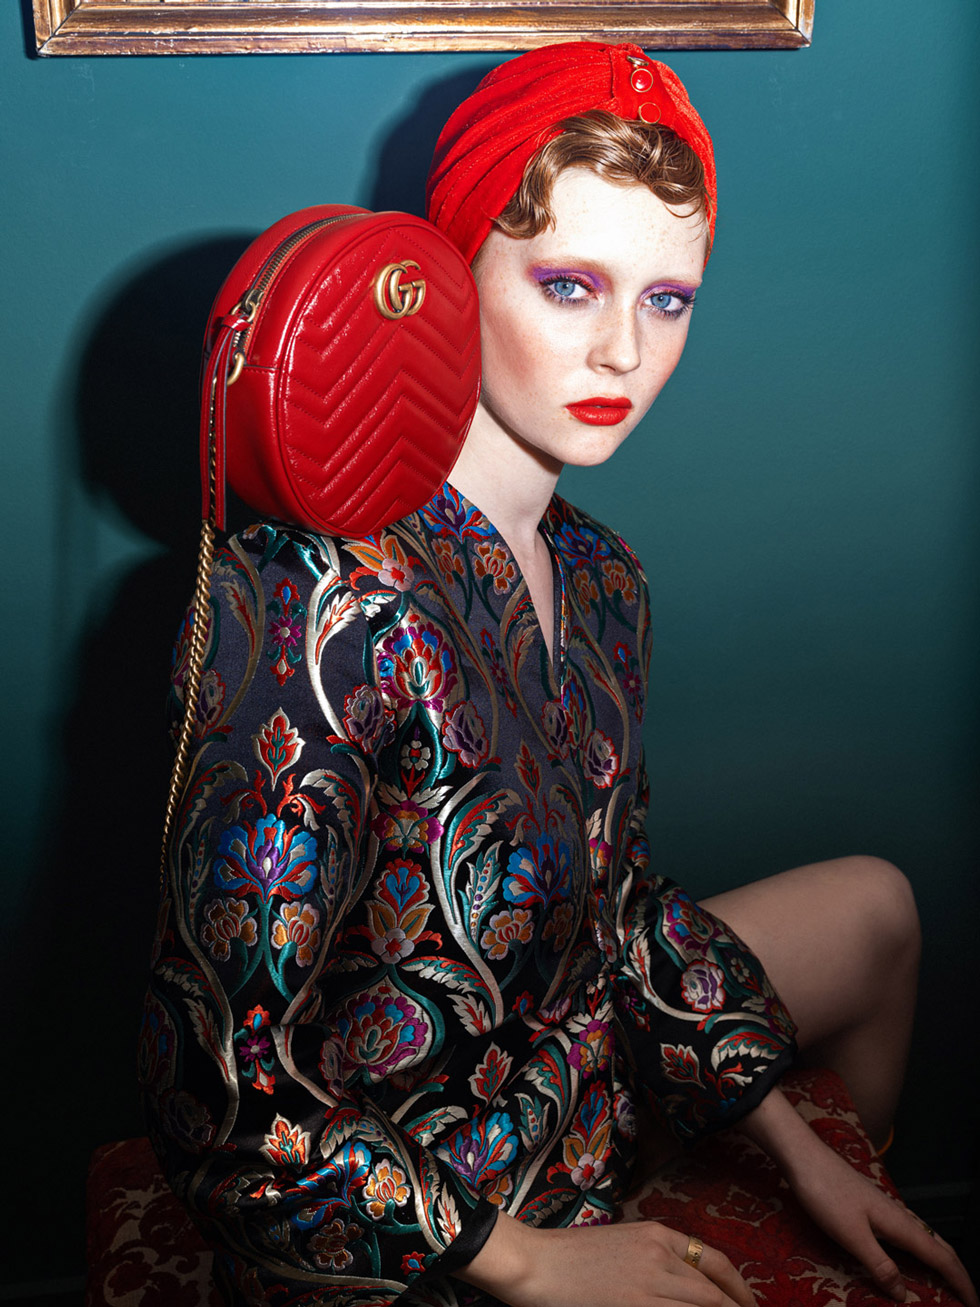 With award-winning photographer Elena Iv-Skaya, we developed this editorial project for Marie Claire. Having a world confinment situation due to the pandemic, we needed to show a woman who was in love with fashion and luxury even if she has to stay at home. We used a mix of luxury brands and bespoke products from local artisans.